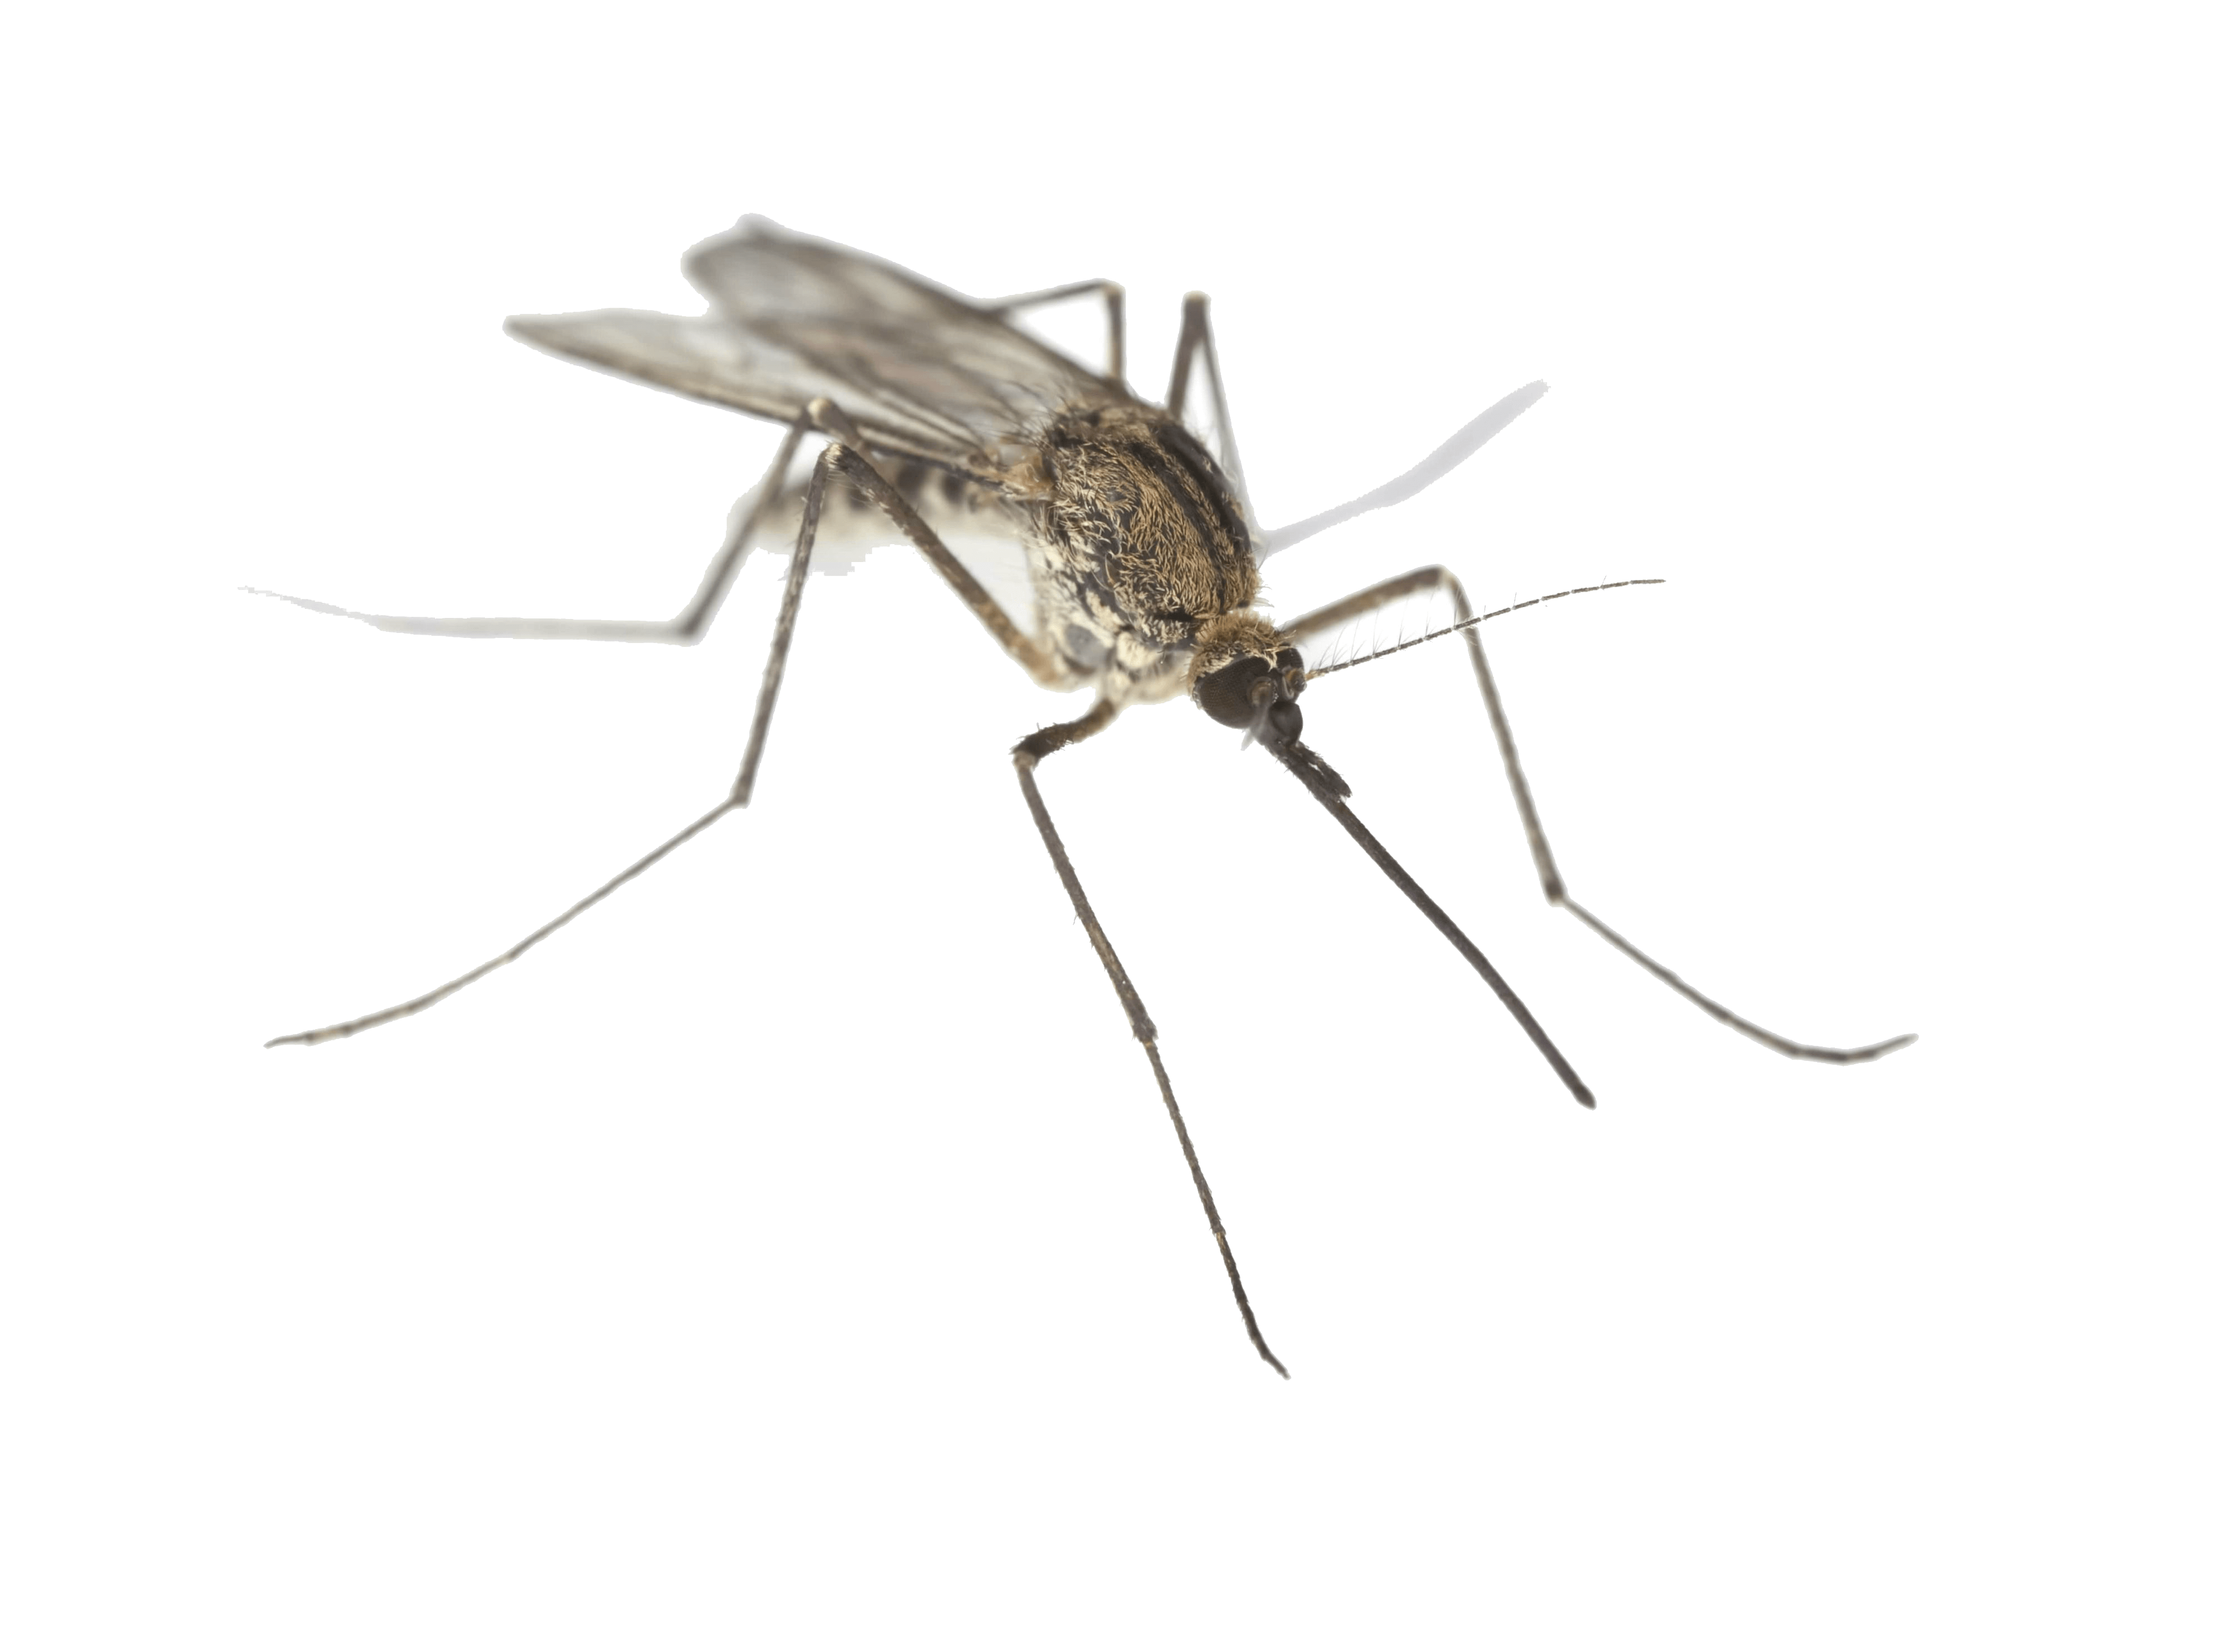 Mosquito clipart chikungunya. Png transparent images all